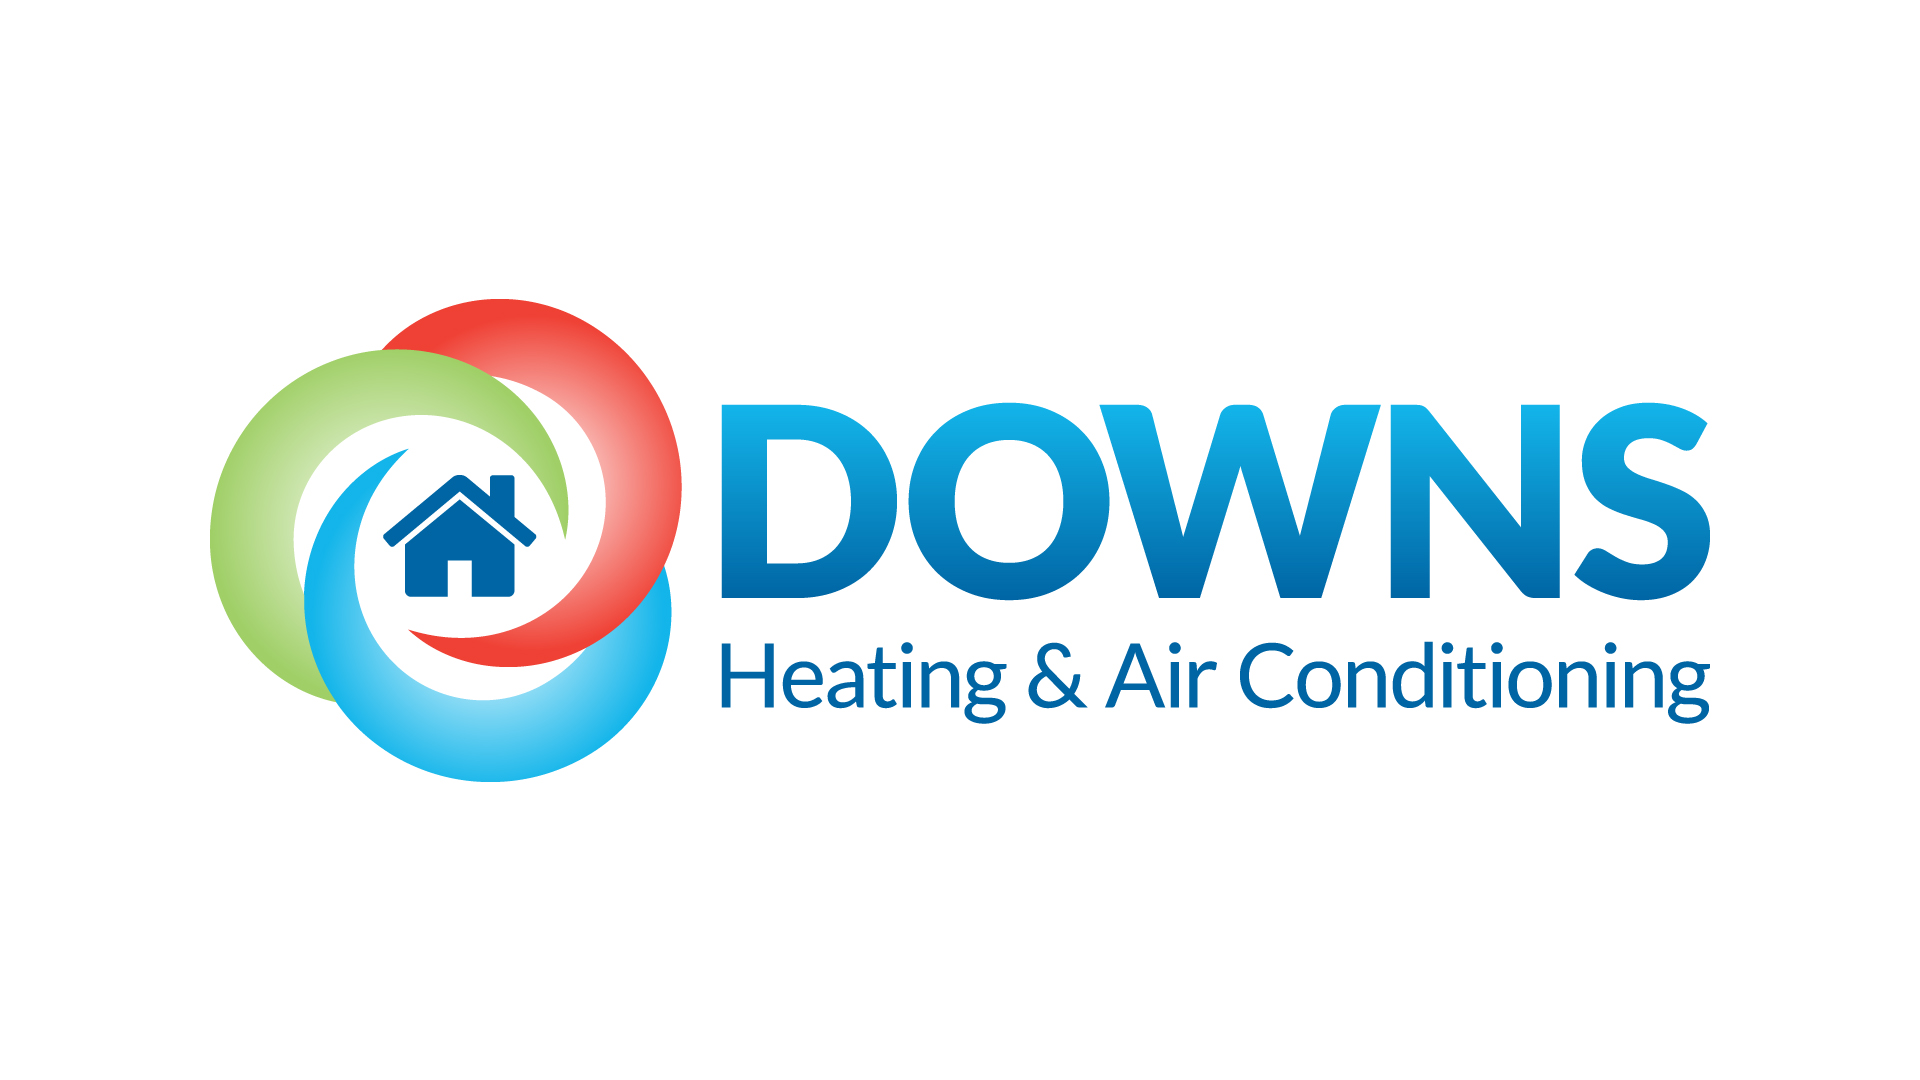 Downs Heating & Air Conditioning